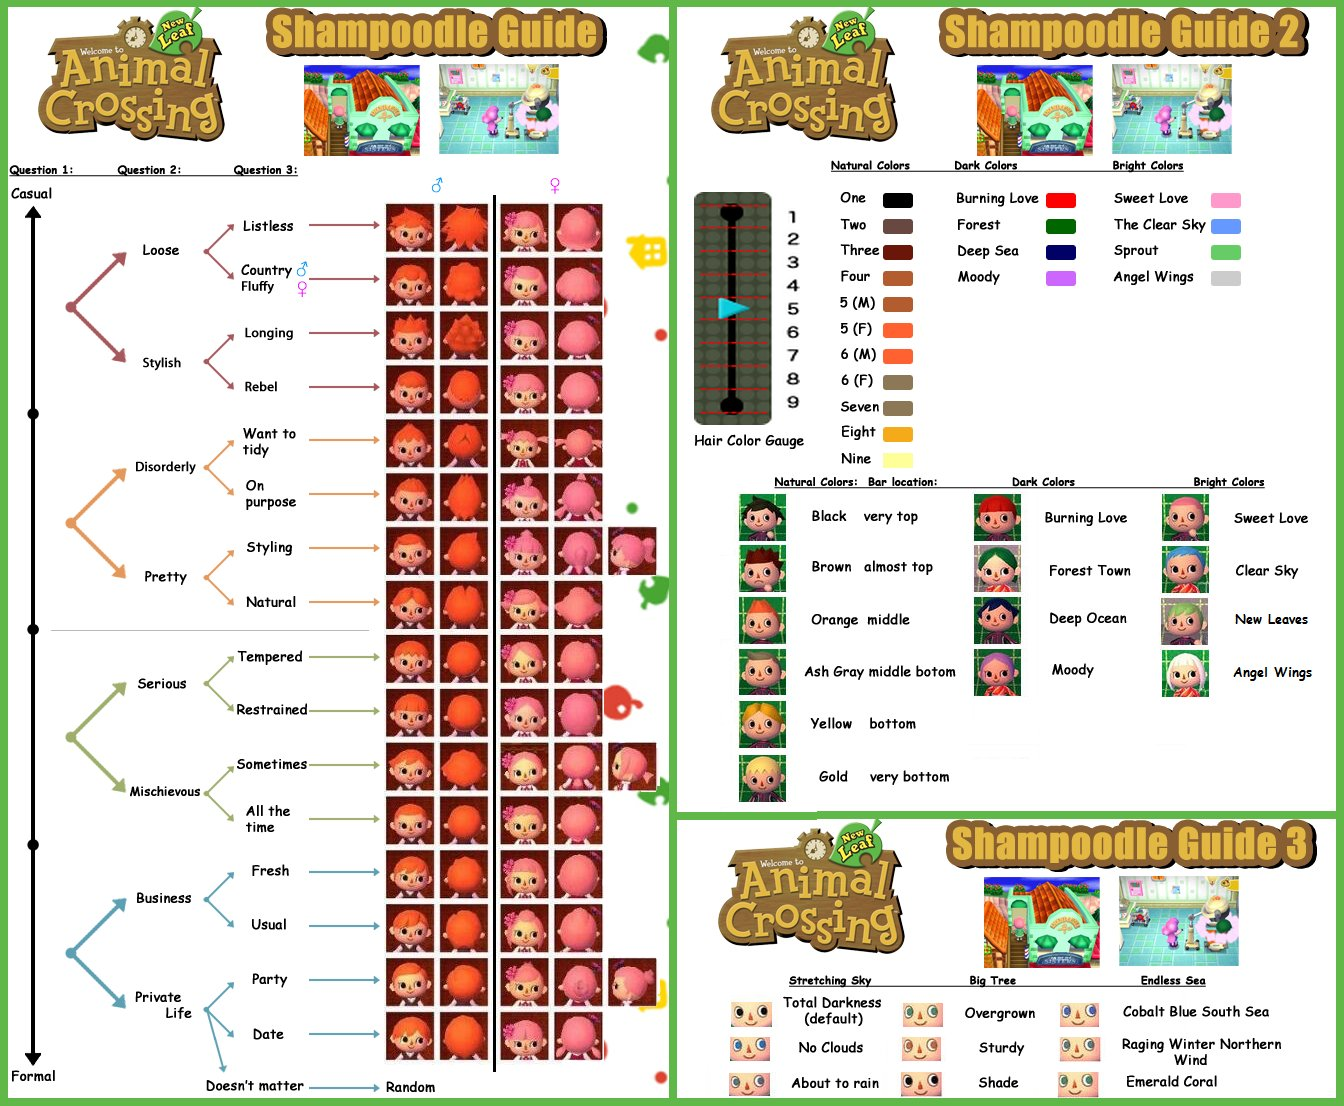 The Best Guide To Shampoodle Animal Crossing New Leaf Animal Pictures